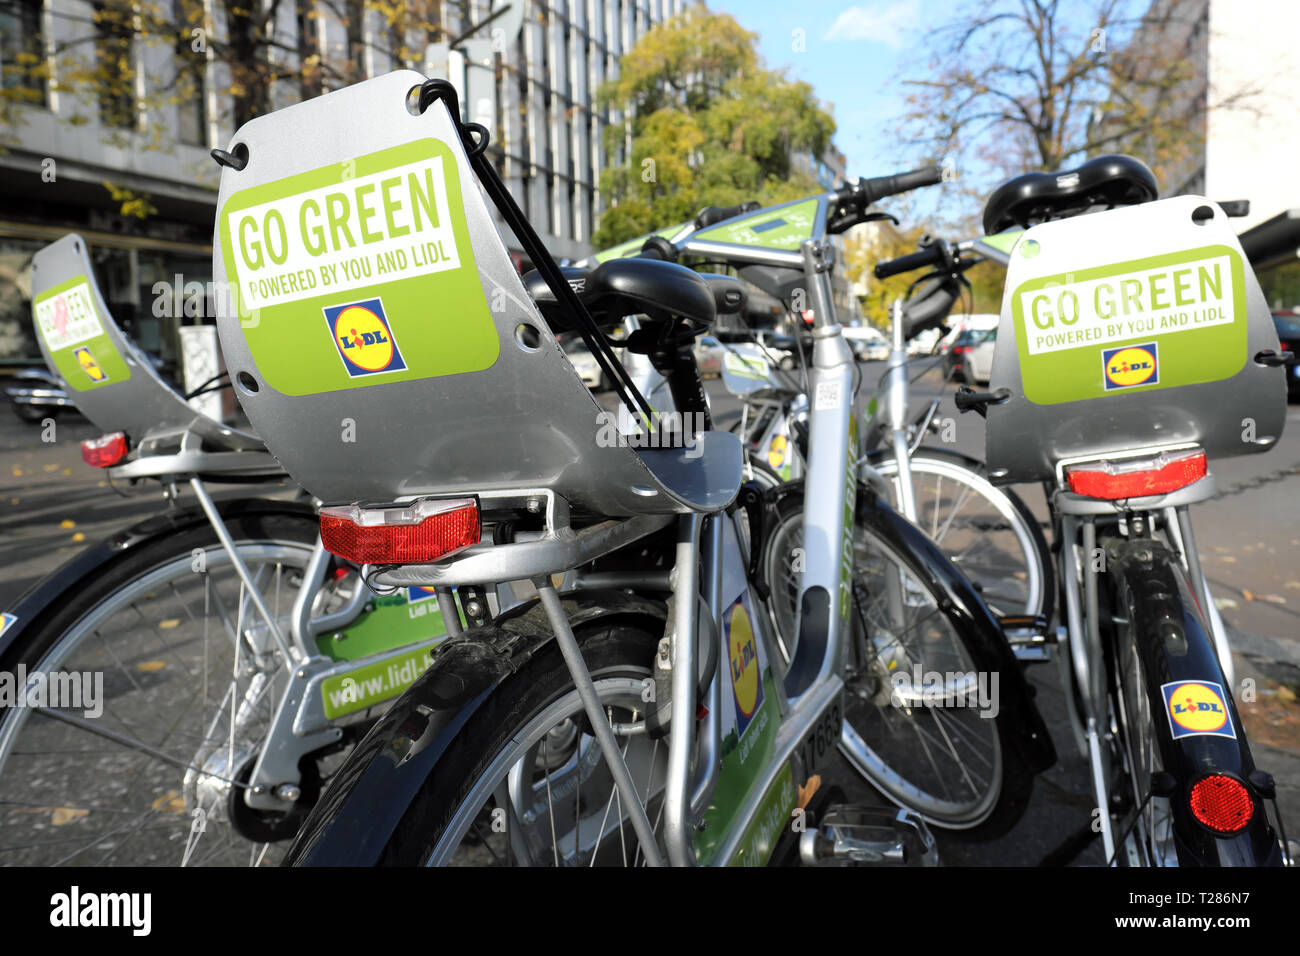 Berlin Germany - Bike sharing hire scheme operated by Lidl - Stock Image